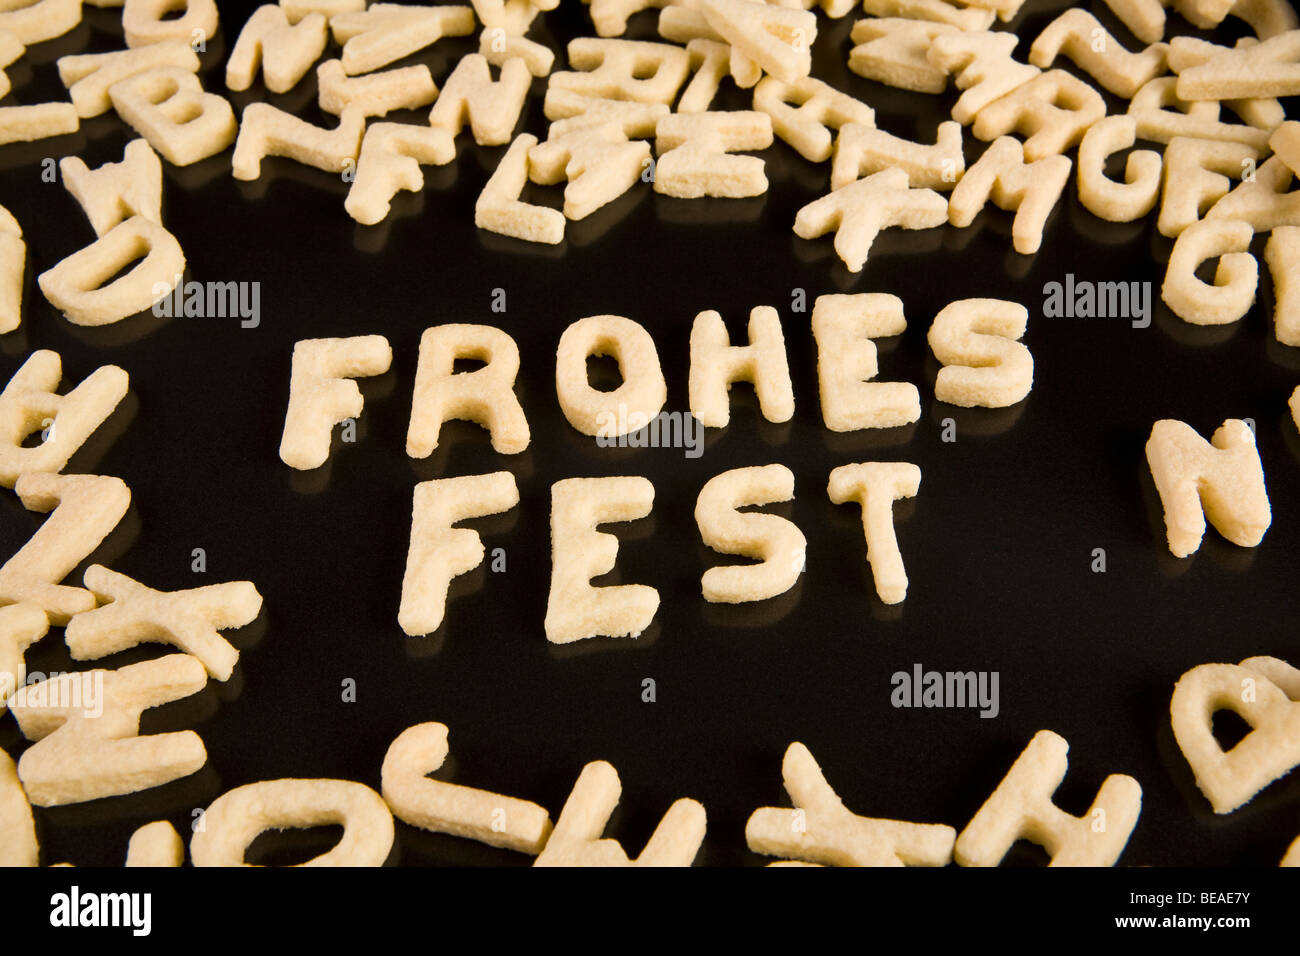 Letter cookies spelling out the German phrase Frohes Fest - Stock Image